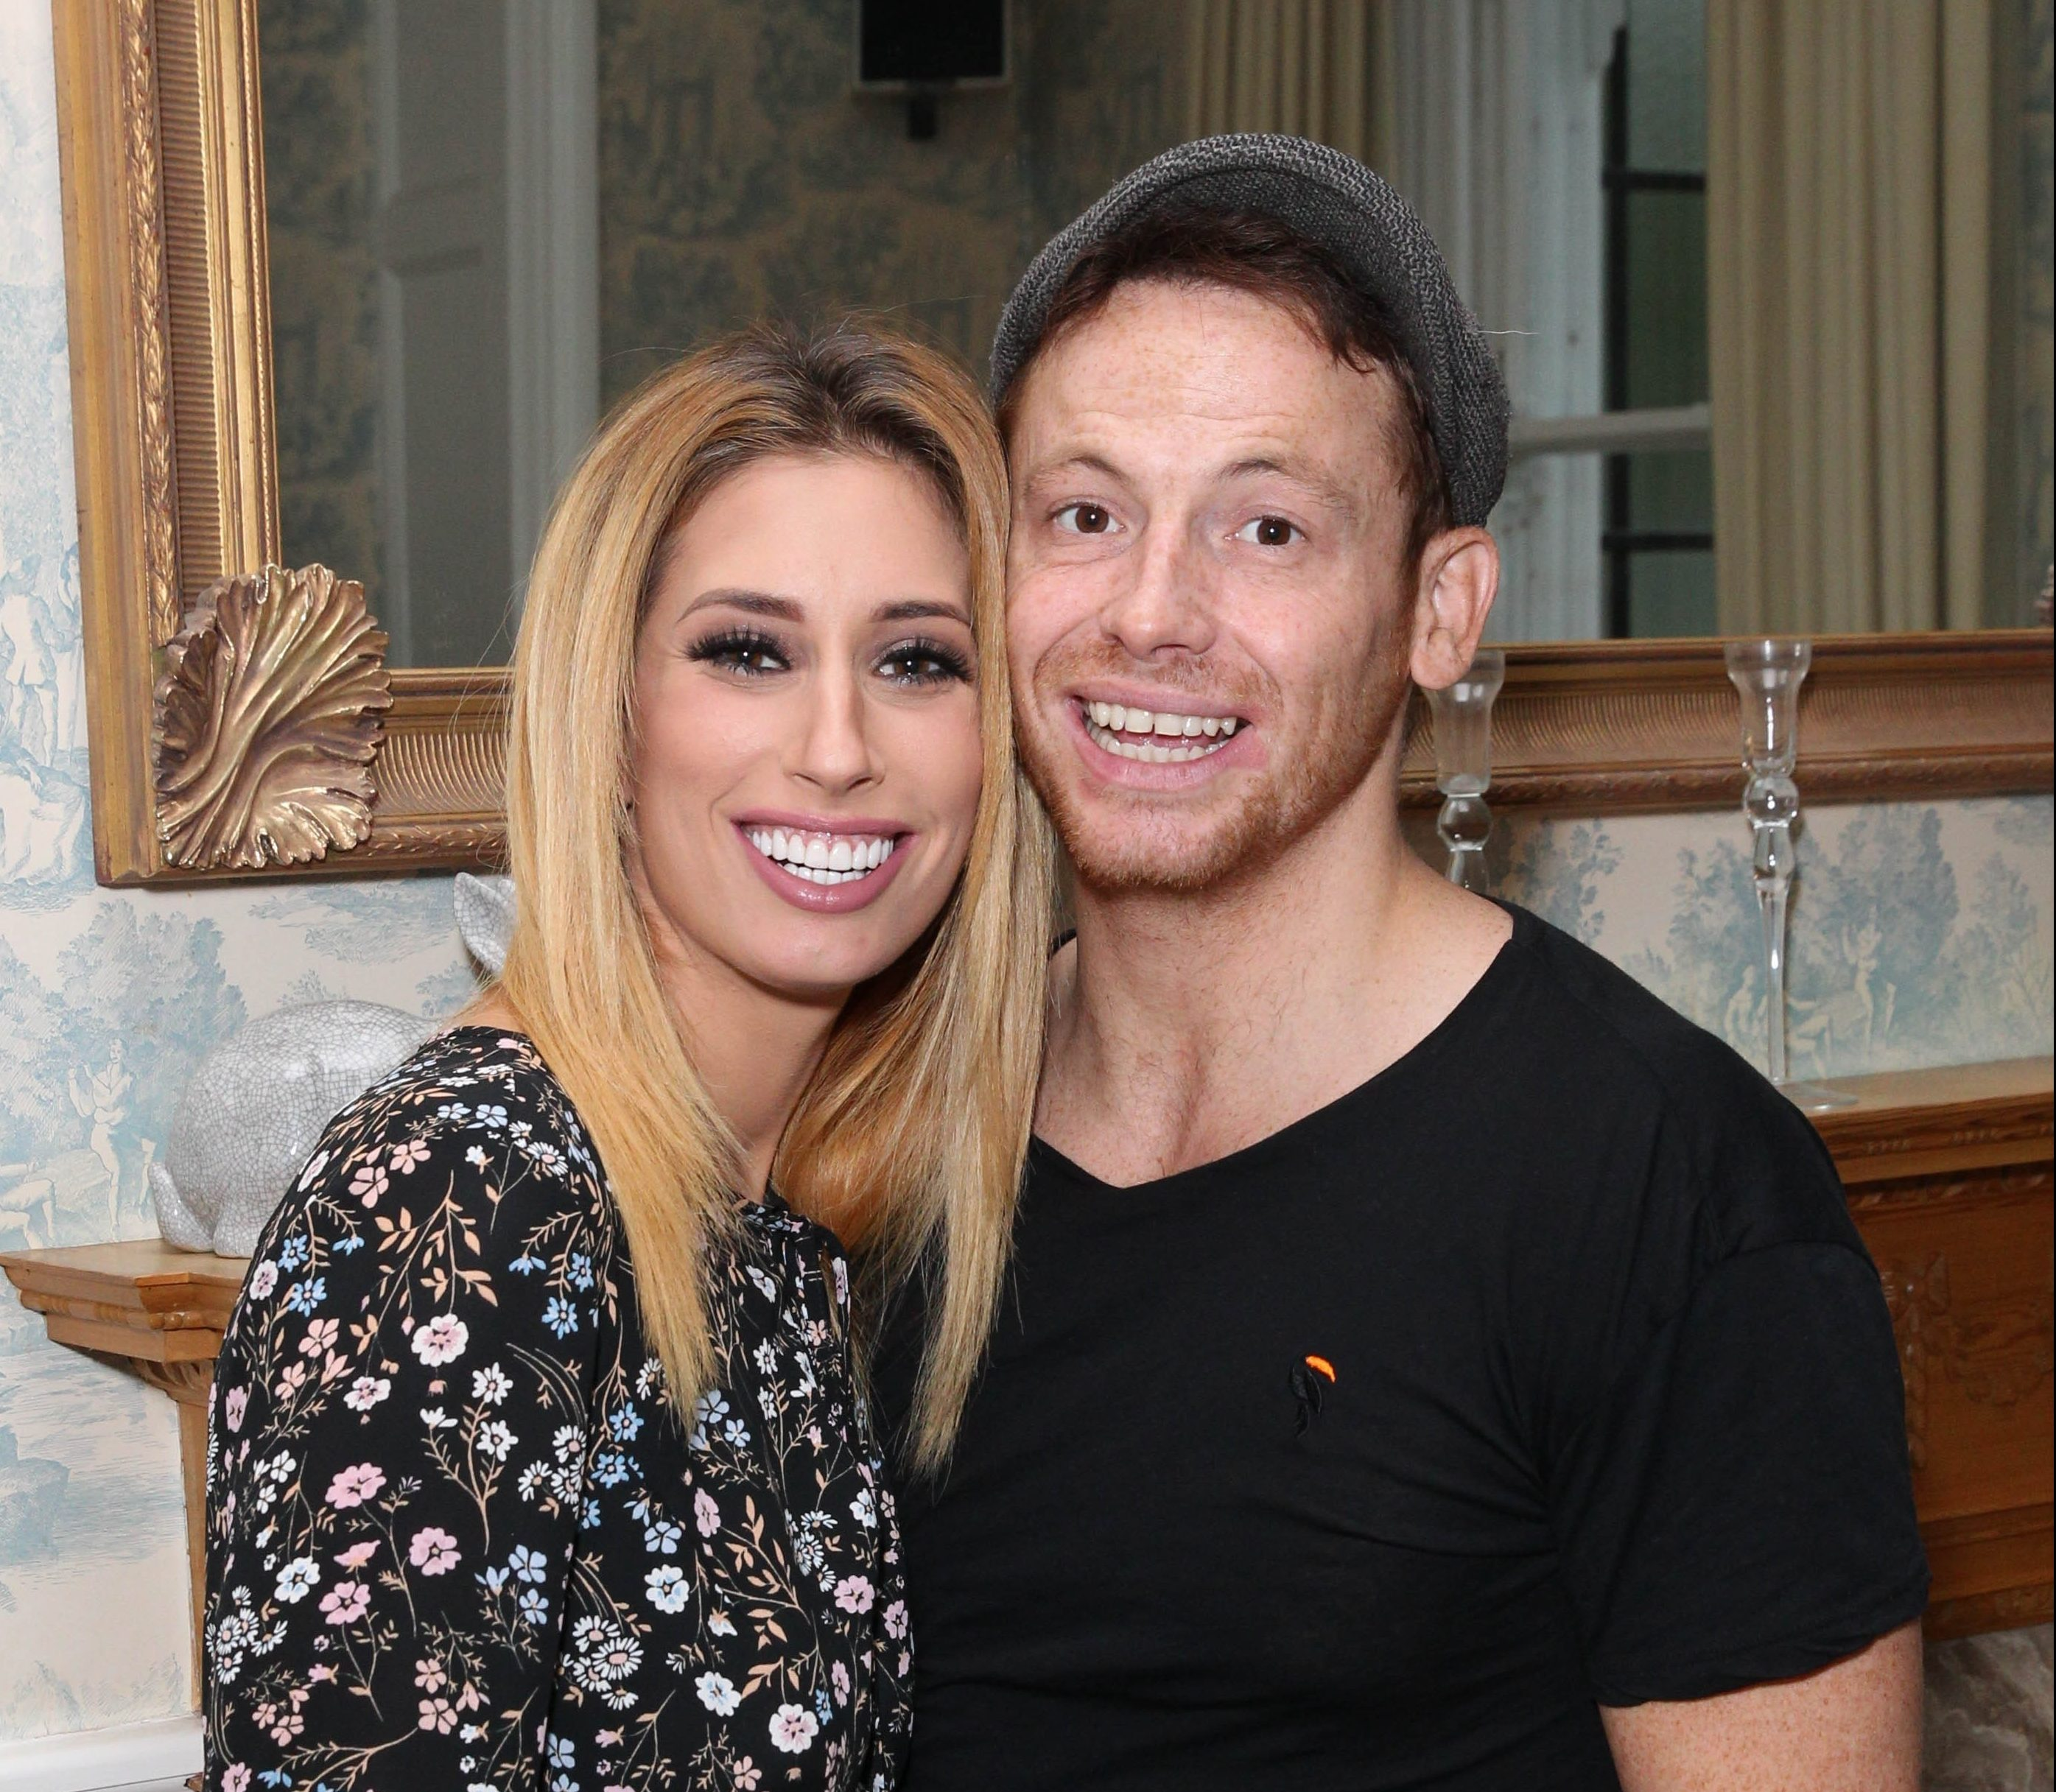 Stacey Solomon gives update on marriage plans with Joe Swash